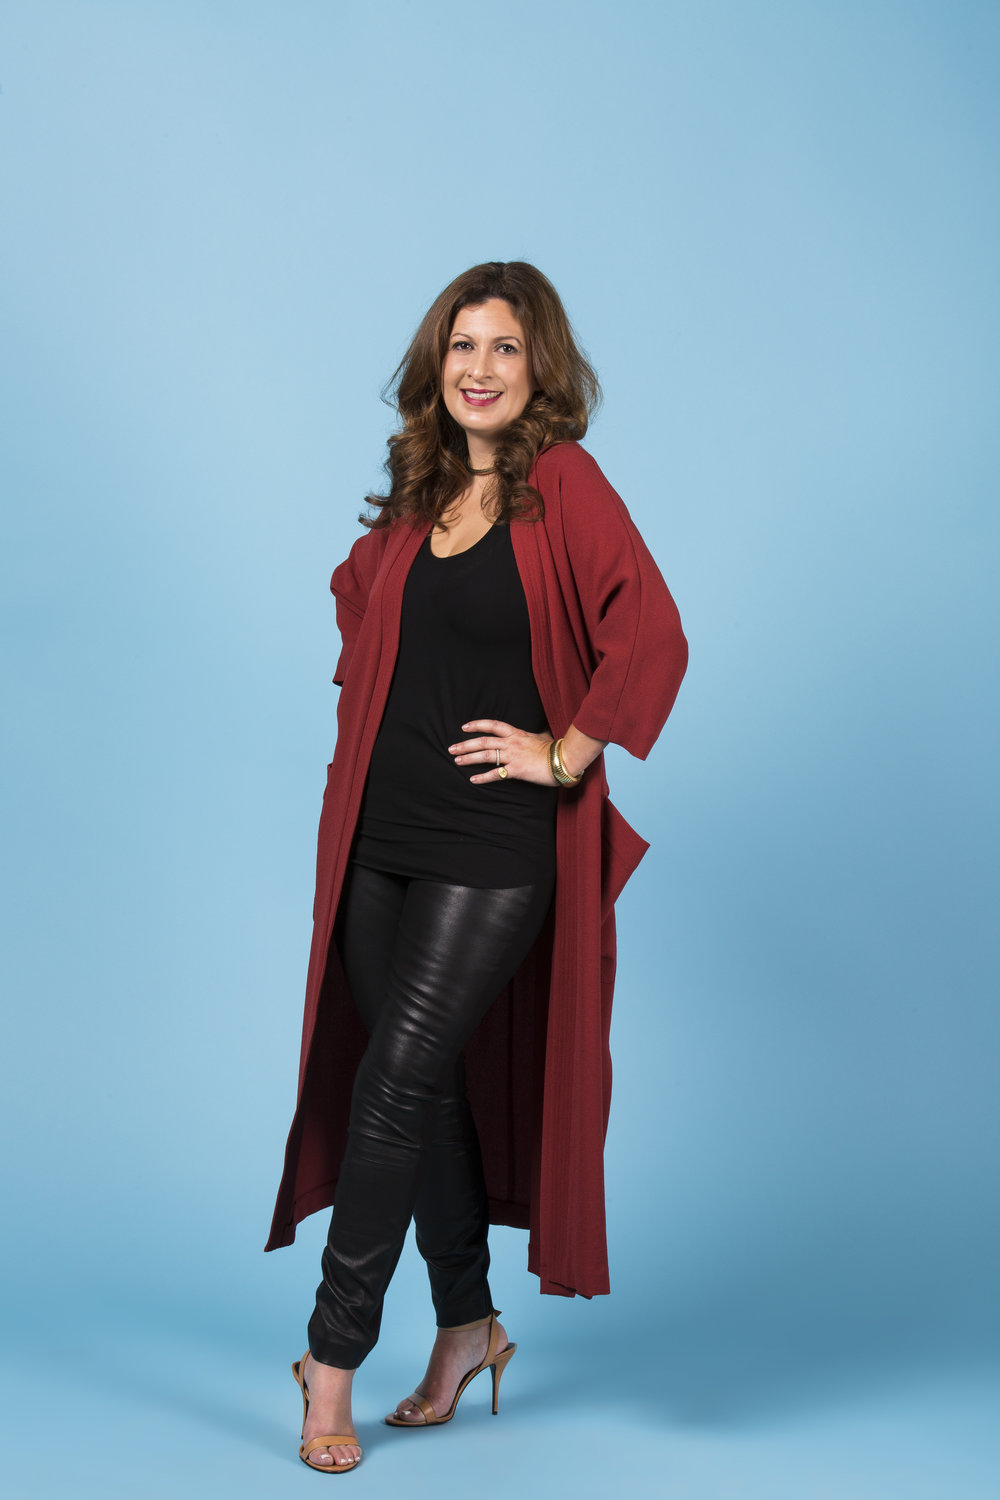 Entrepreneur: Katie Rosen Kitchens, FabFitFun — Create + Cultivate